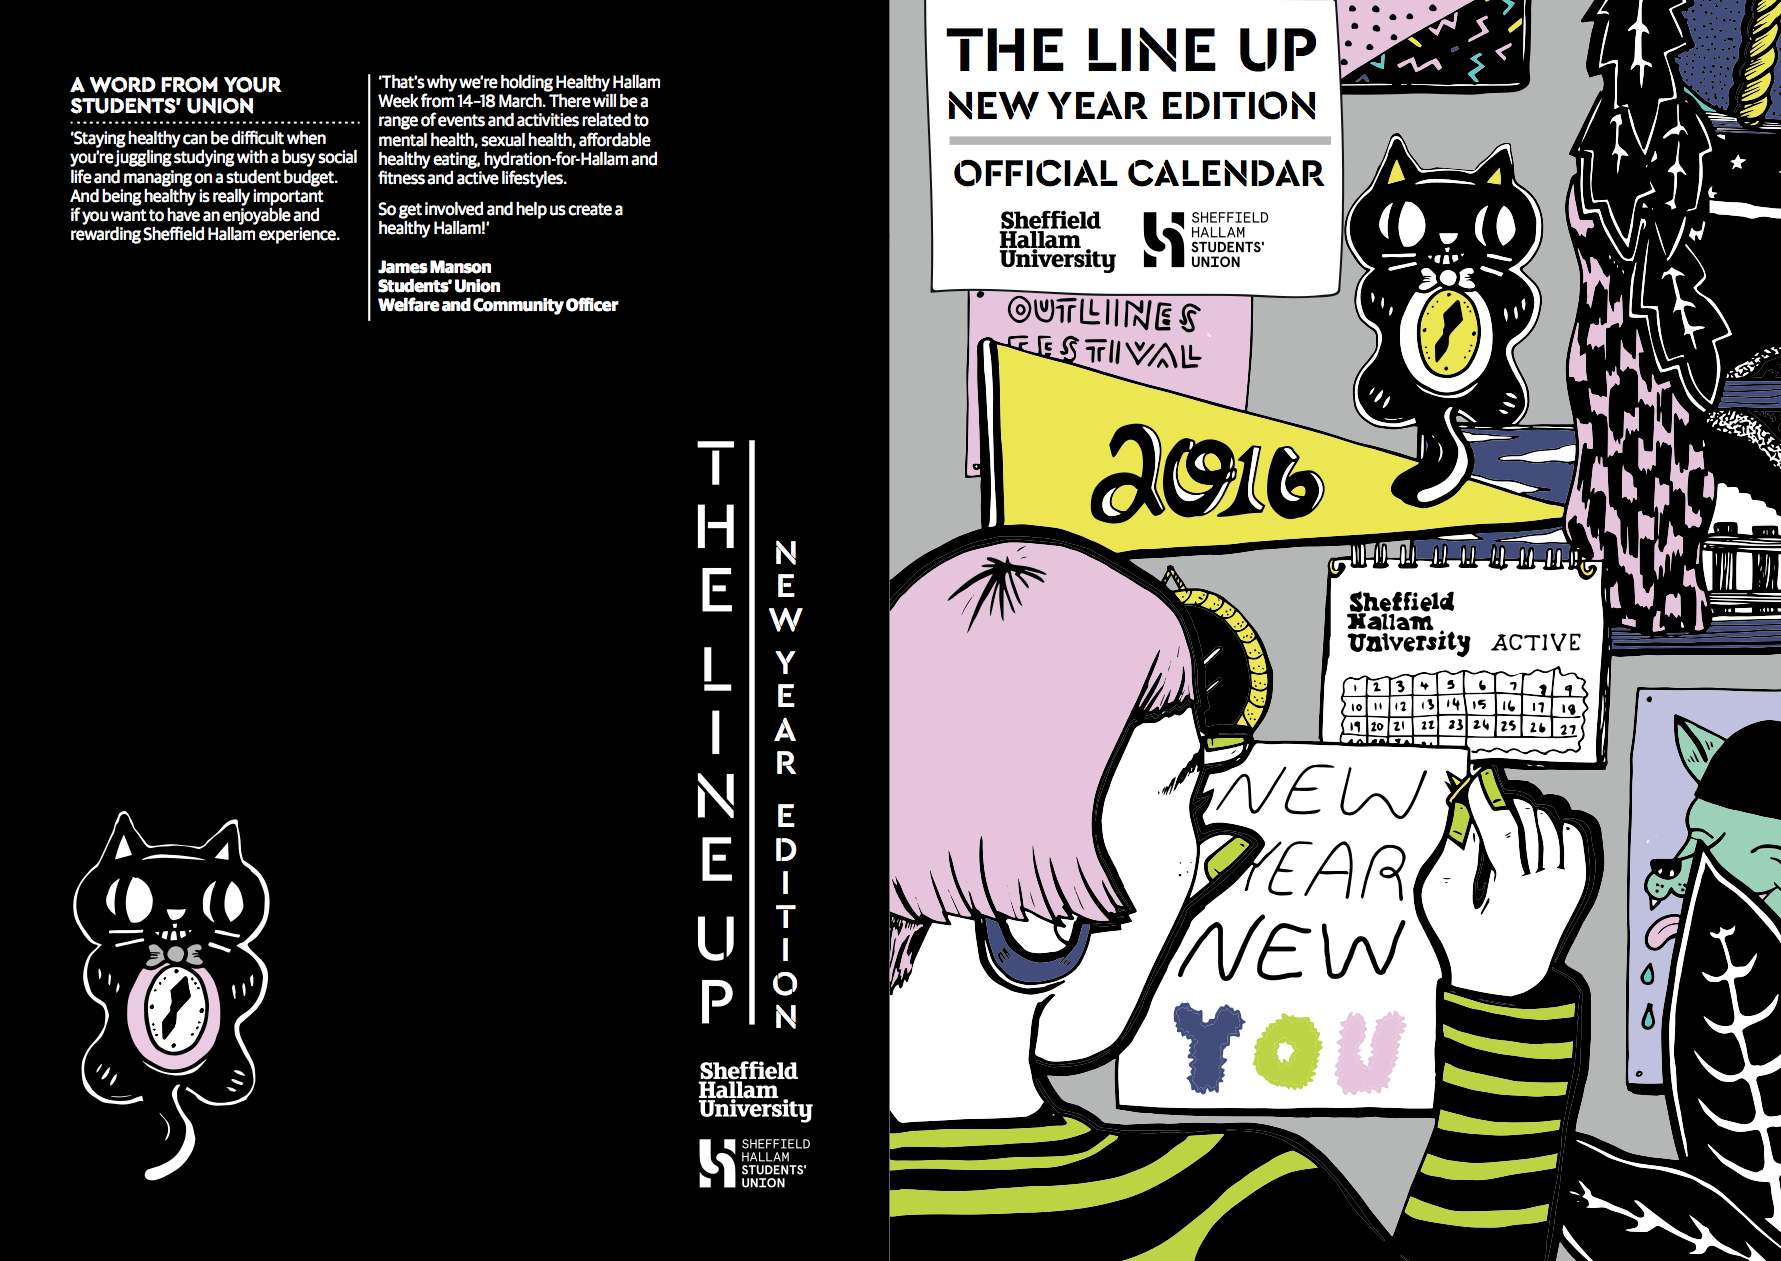 The Line Up - COVER: NY Edition, January/February 2016   Sheffield Hallam's Line Up calendar of events and features in and around Sheffield University and the city. Targeted at our current students. My illustration features on both the cover and the inners of an a5 (fold out to a3) calendar.